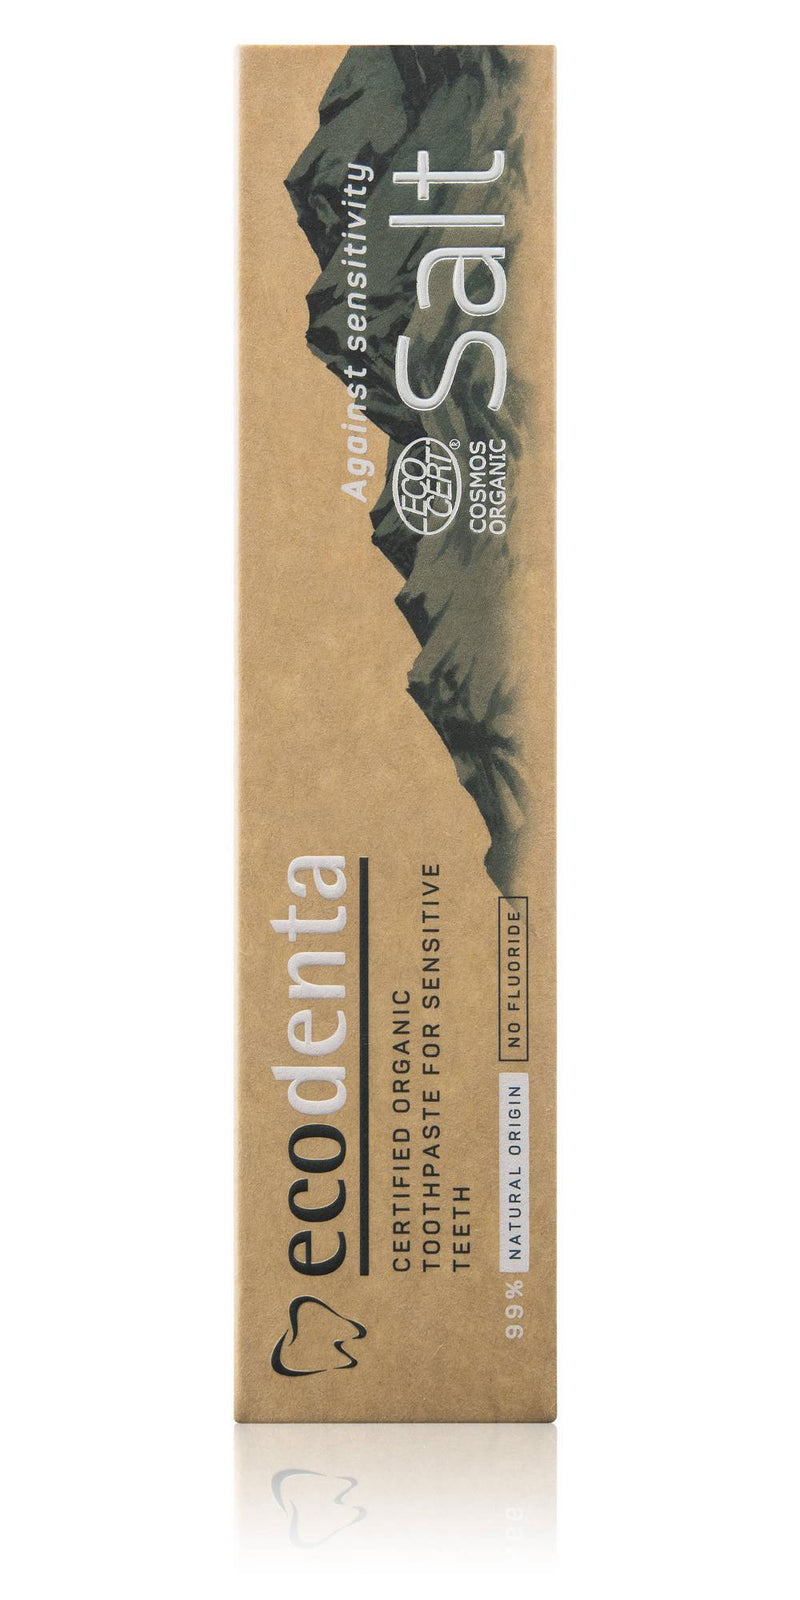 eco denta - Toothpaste With Natural Salt And Potassium (100Ml) 99% Organic (β)